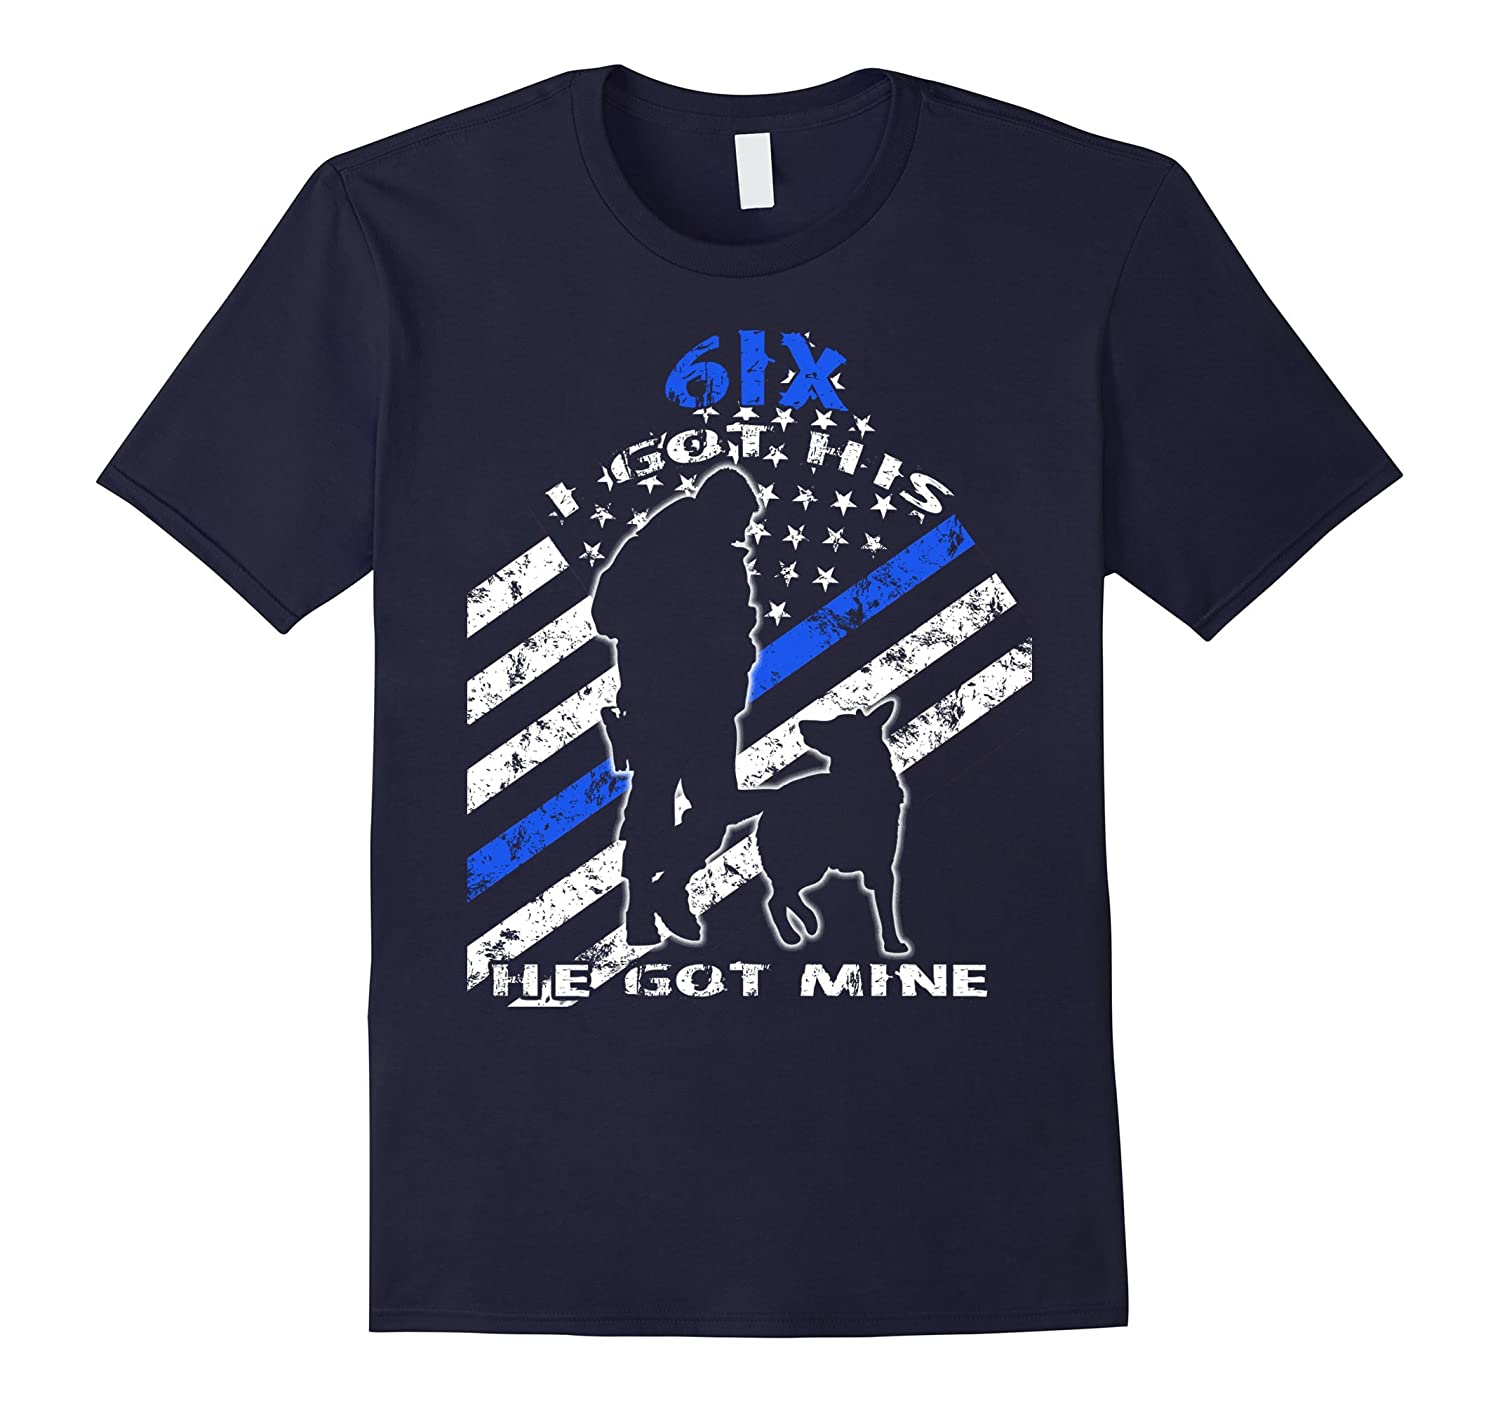 6IX Police K9 Shirt Six I got His He got Mine Thin Blue Line